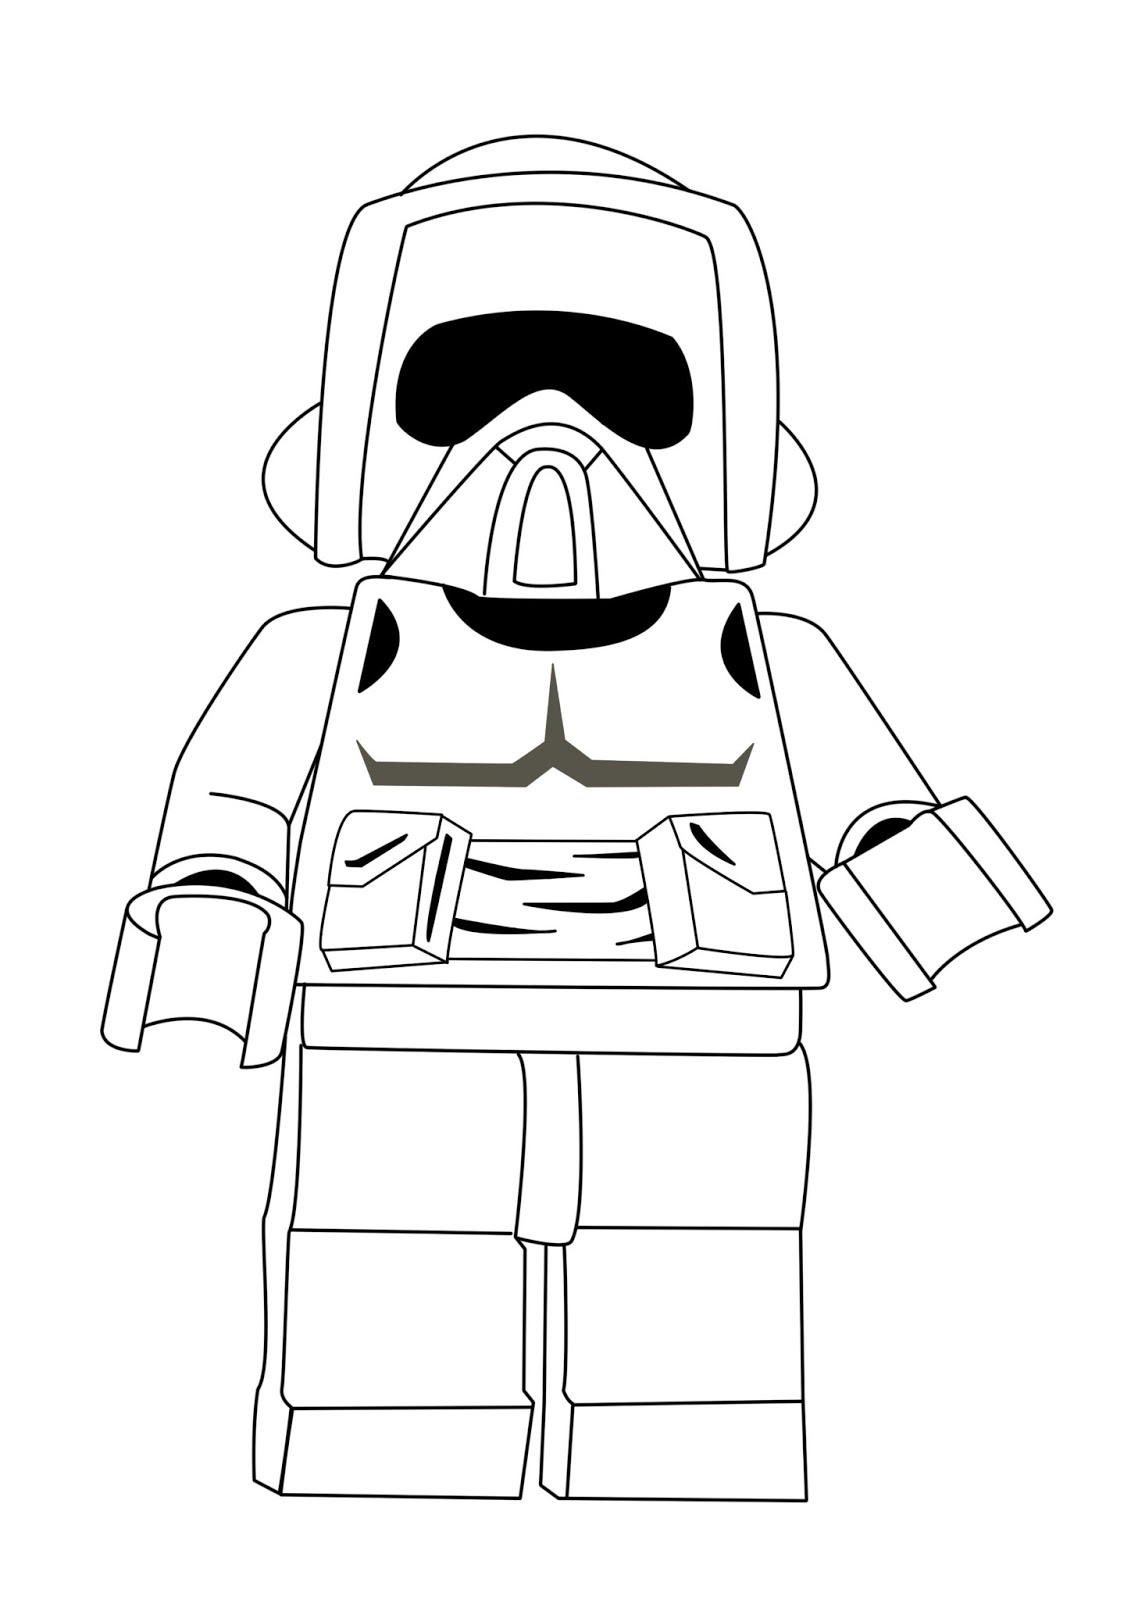 lego star wars pictures to print lego star wars coloring pages  best coloring pages for kids wars lego to star pictures print